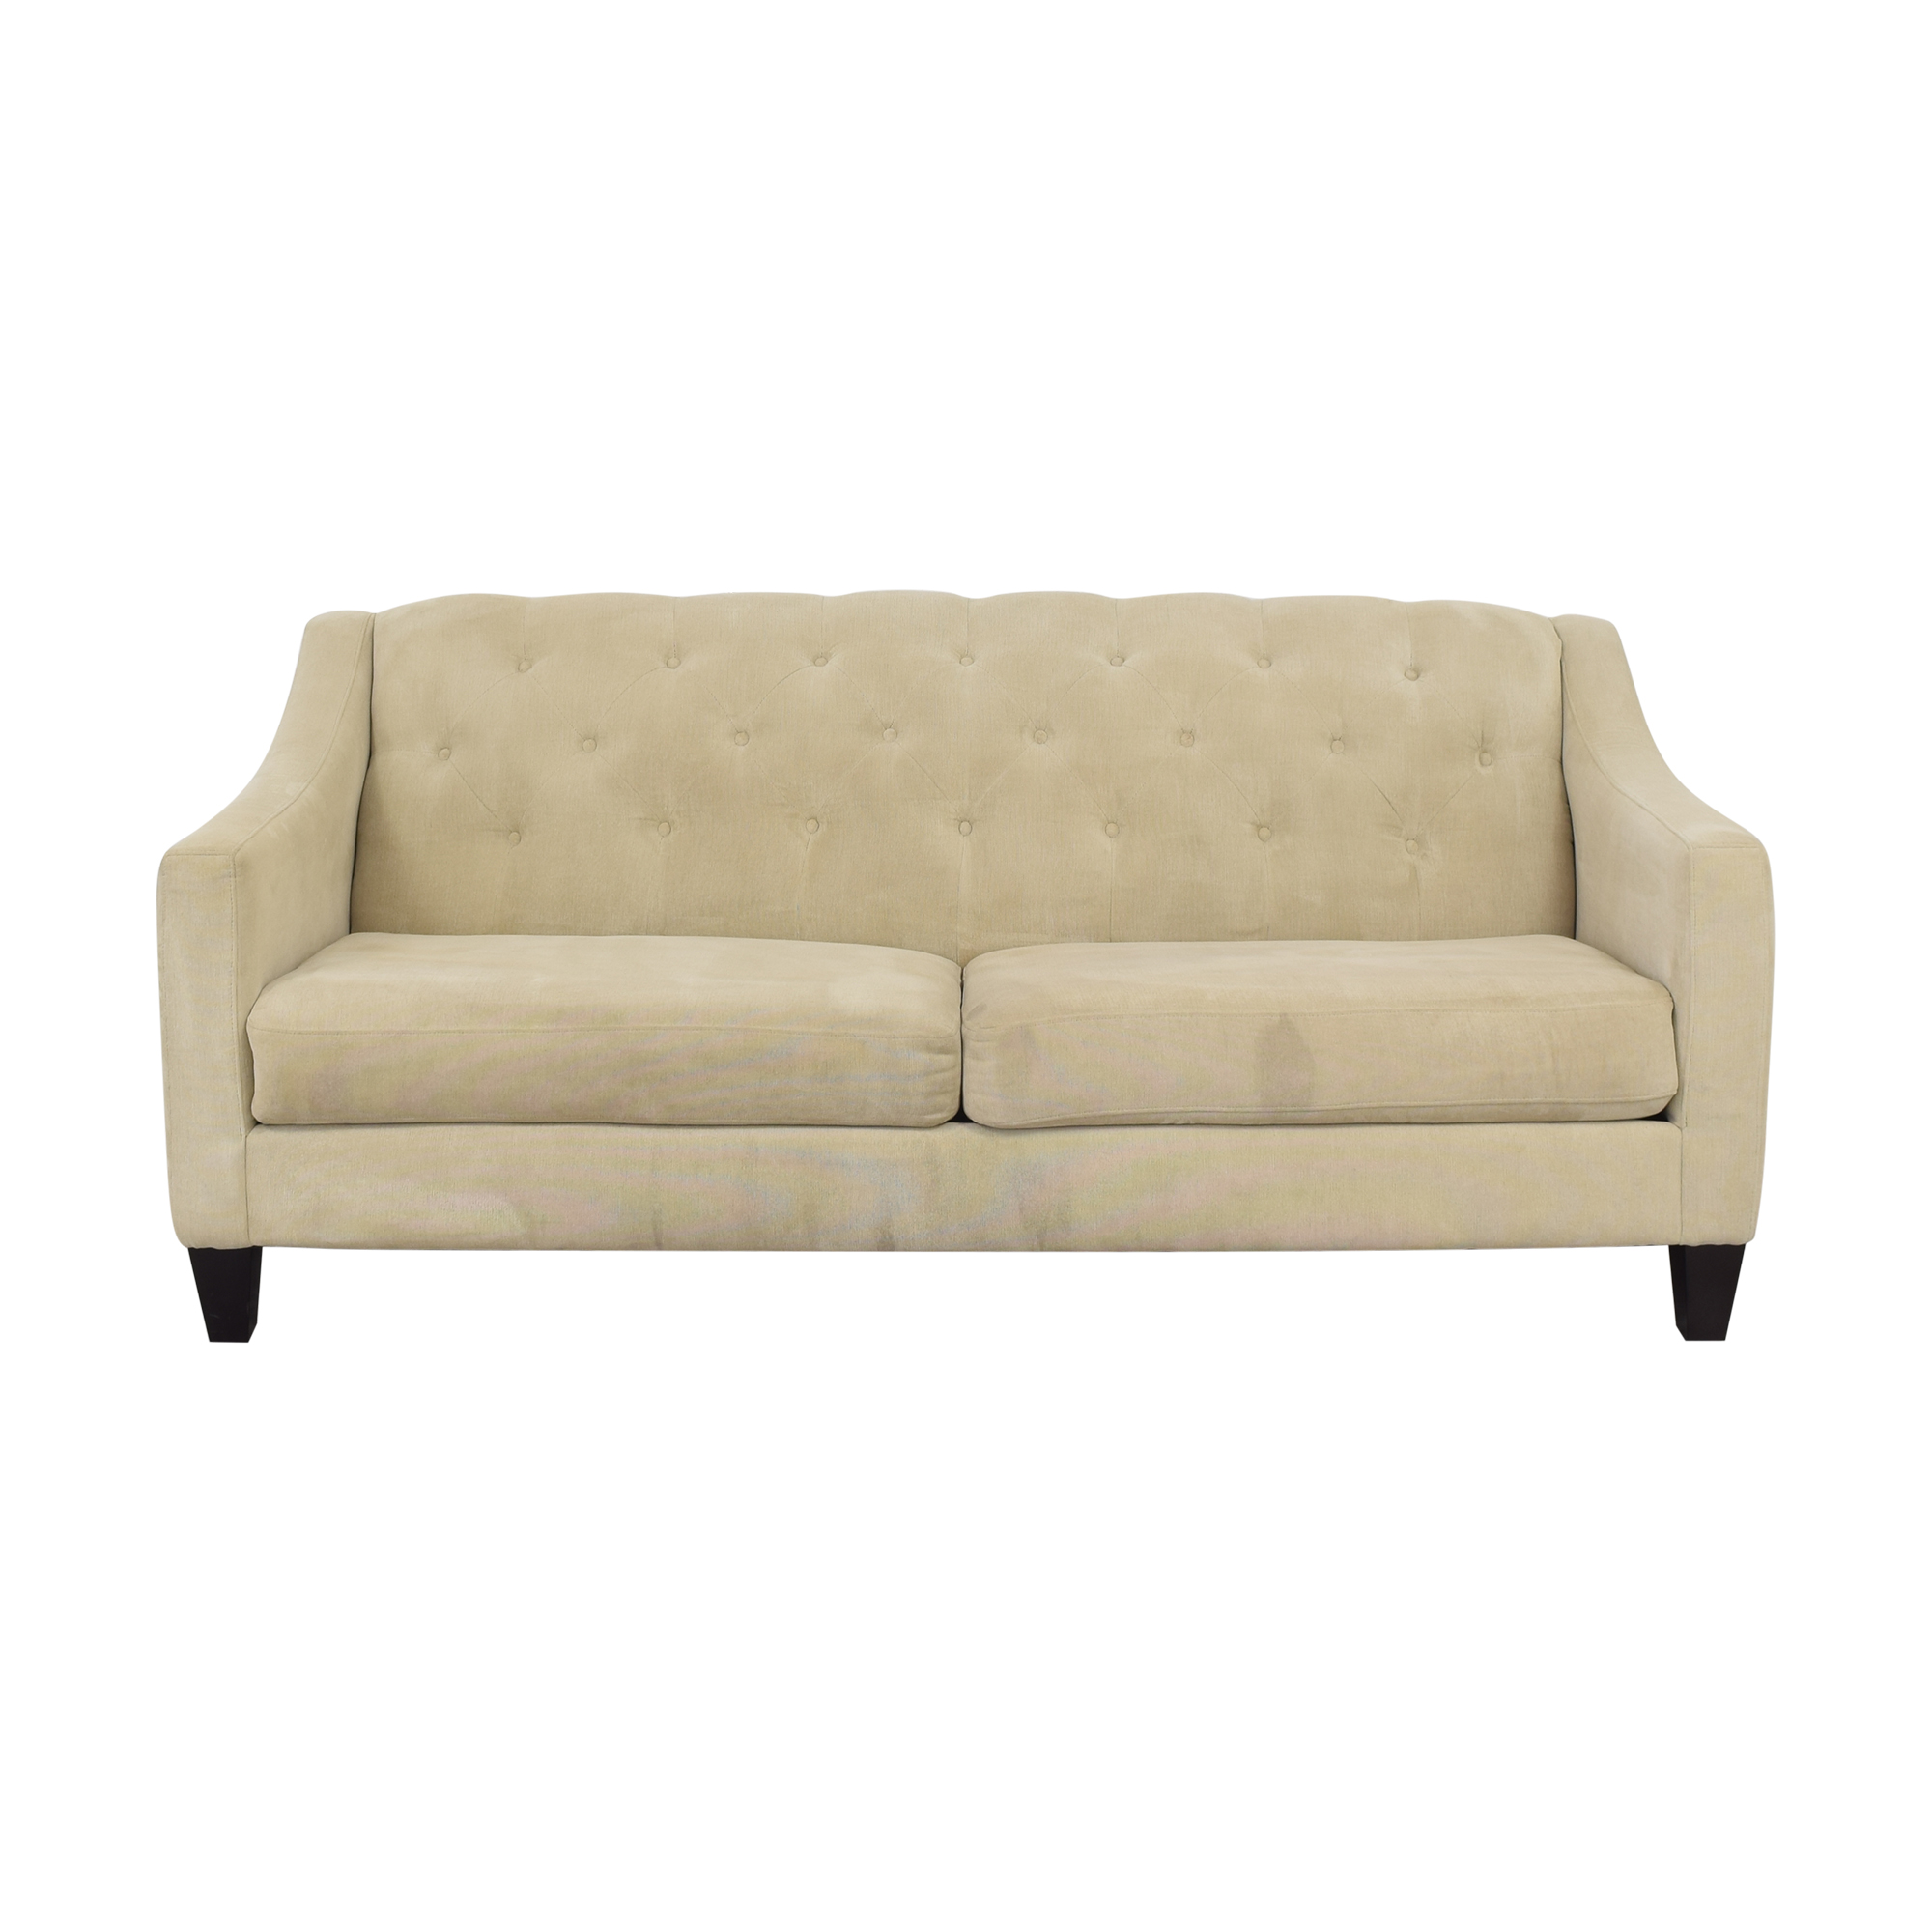 shop Raymour & Flanigan Chic Beige Sofa Raymour & Flanigan Classic Sofas